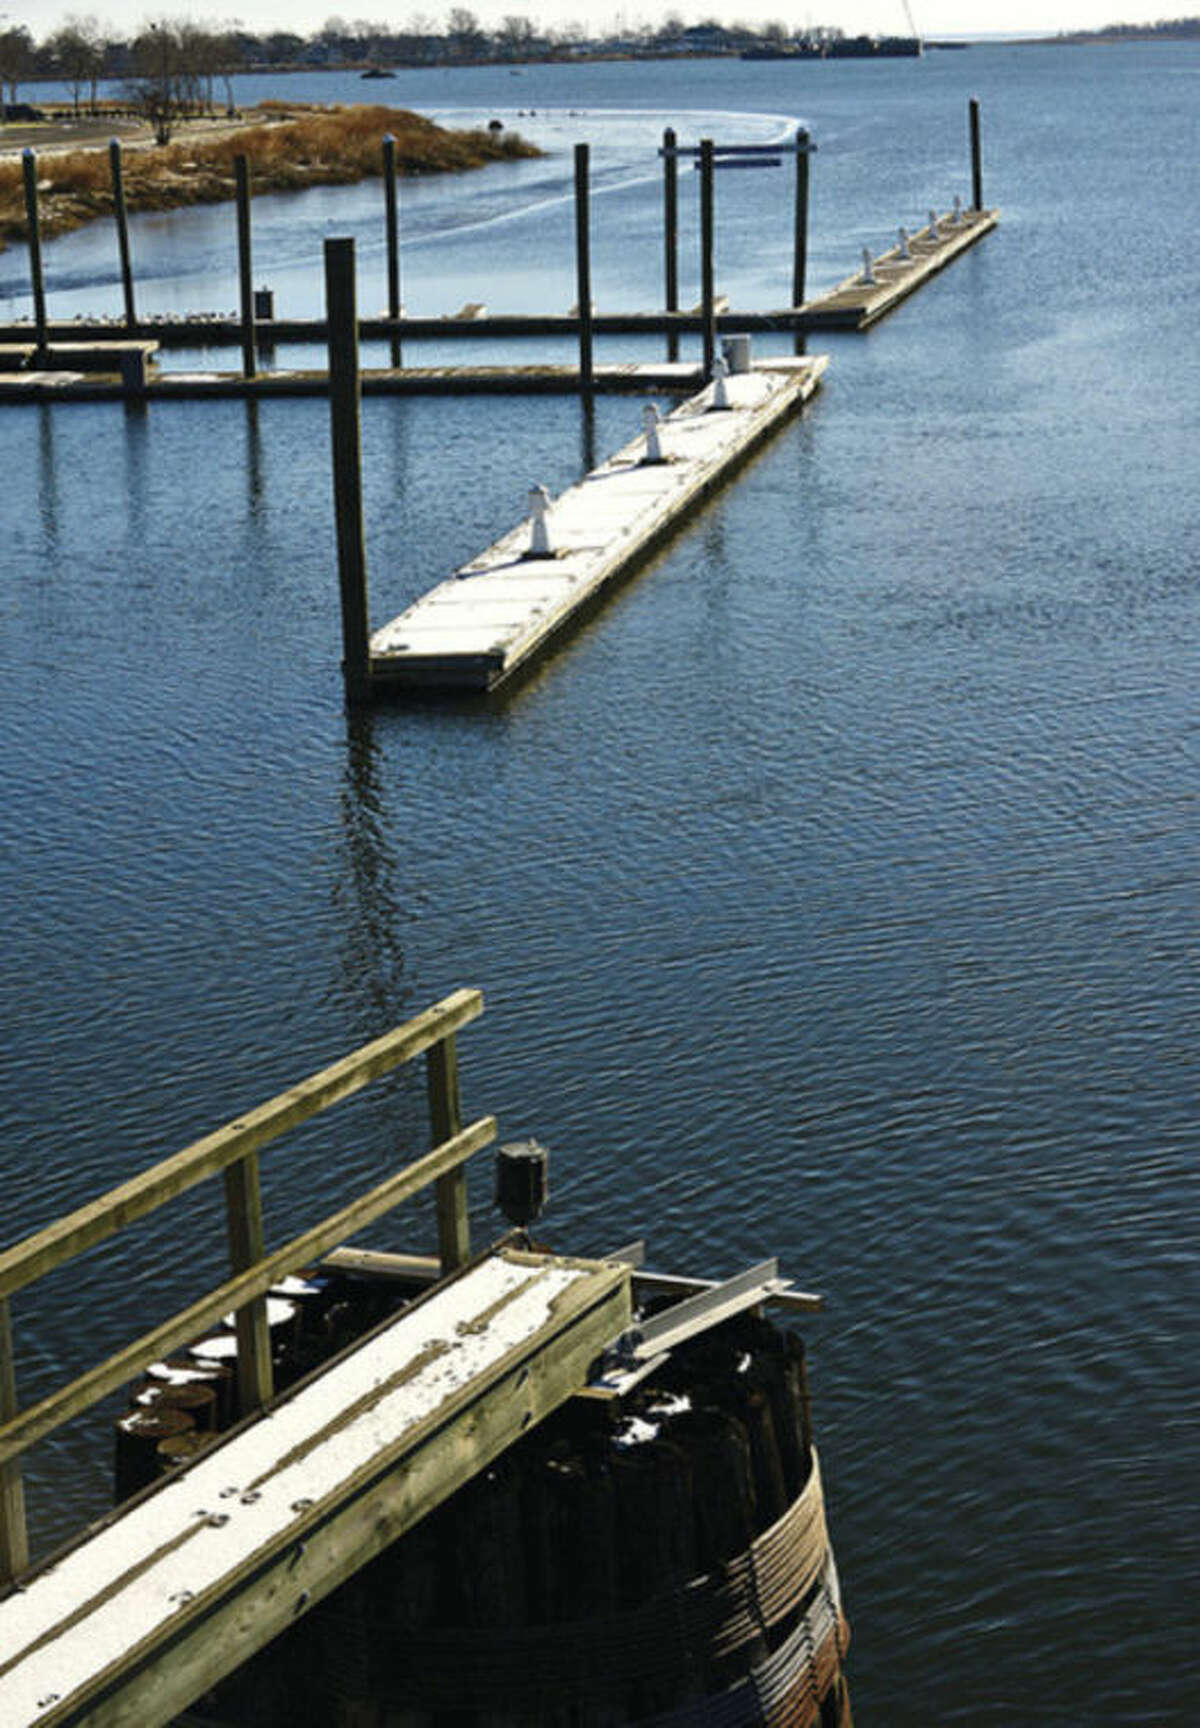 Hour photo / Erik Trautmann The Norwalk Visitor's dock face further restrictions.